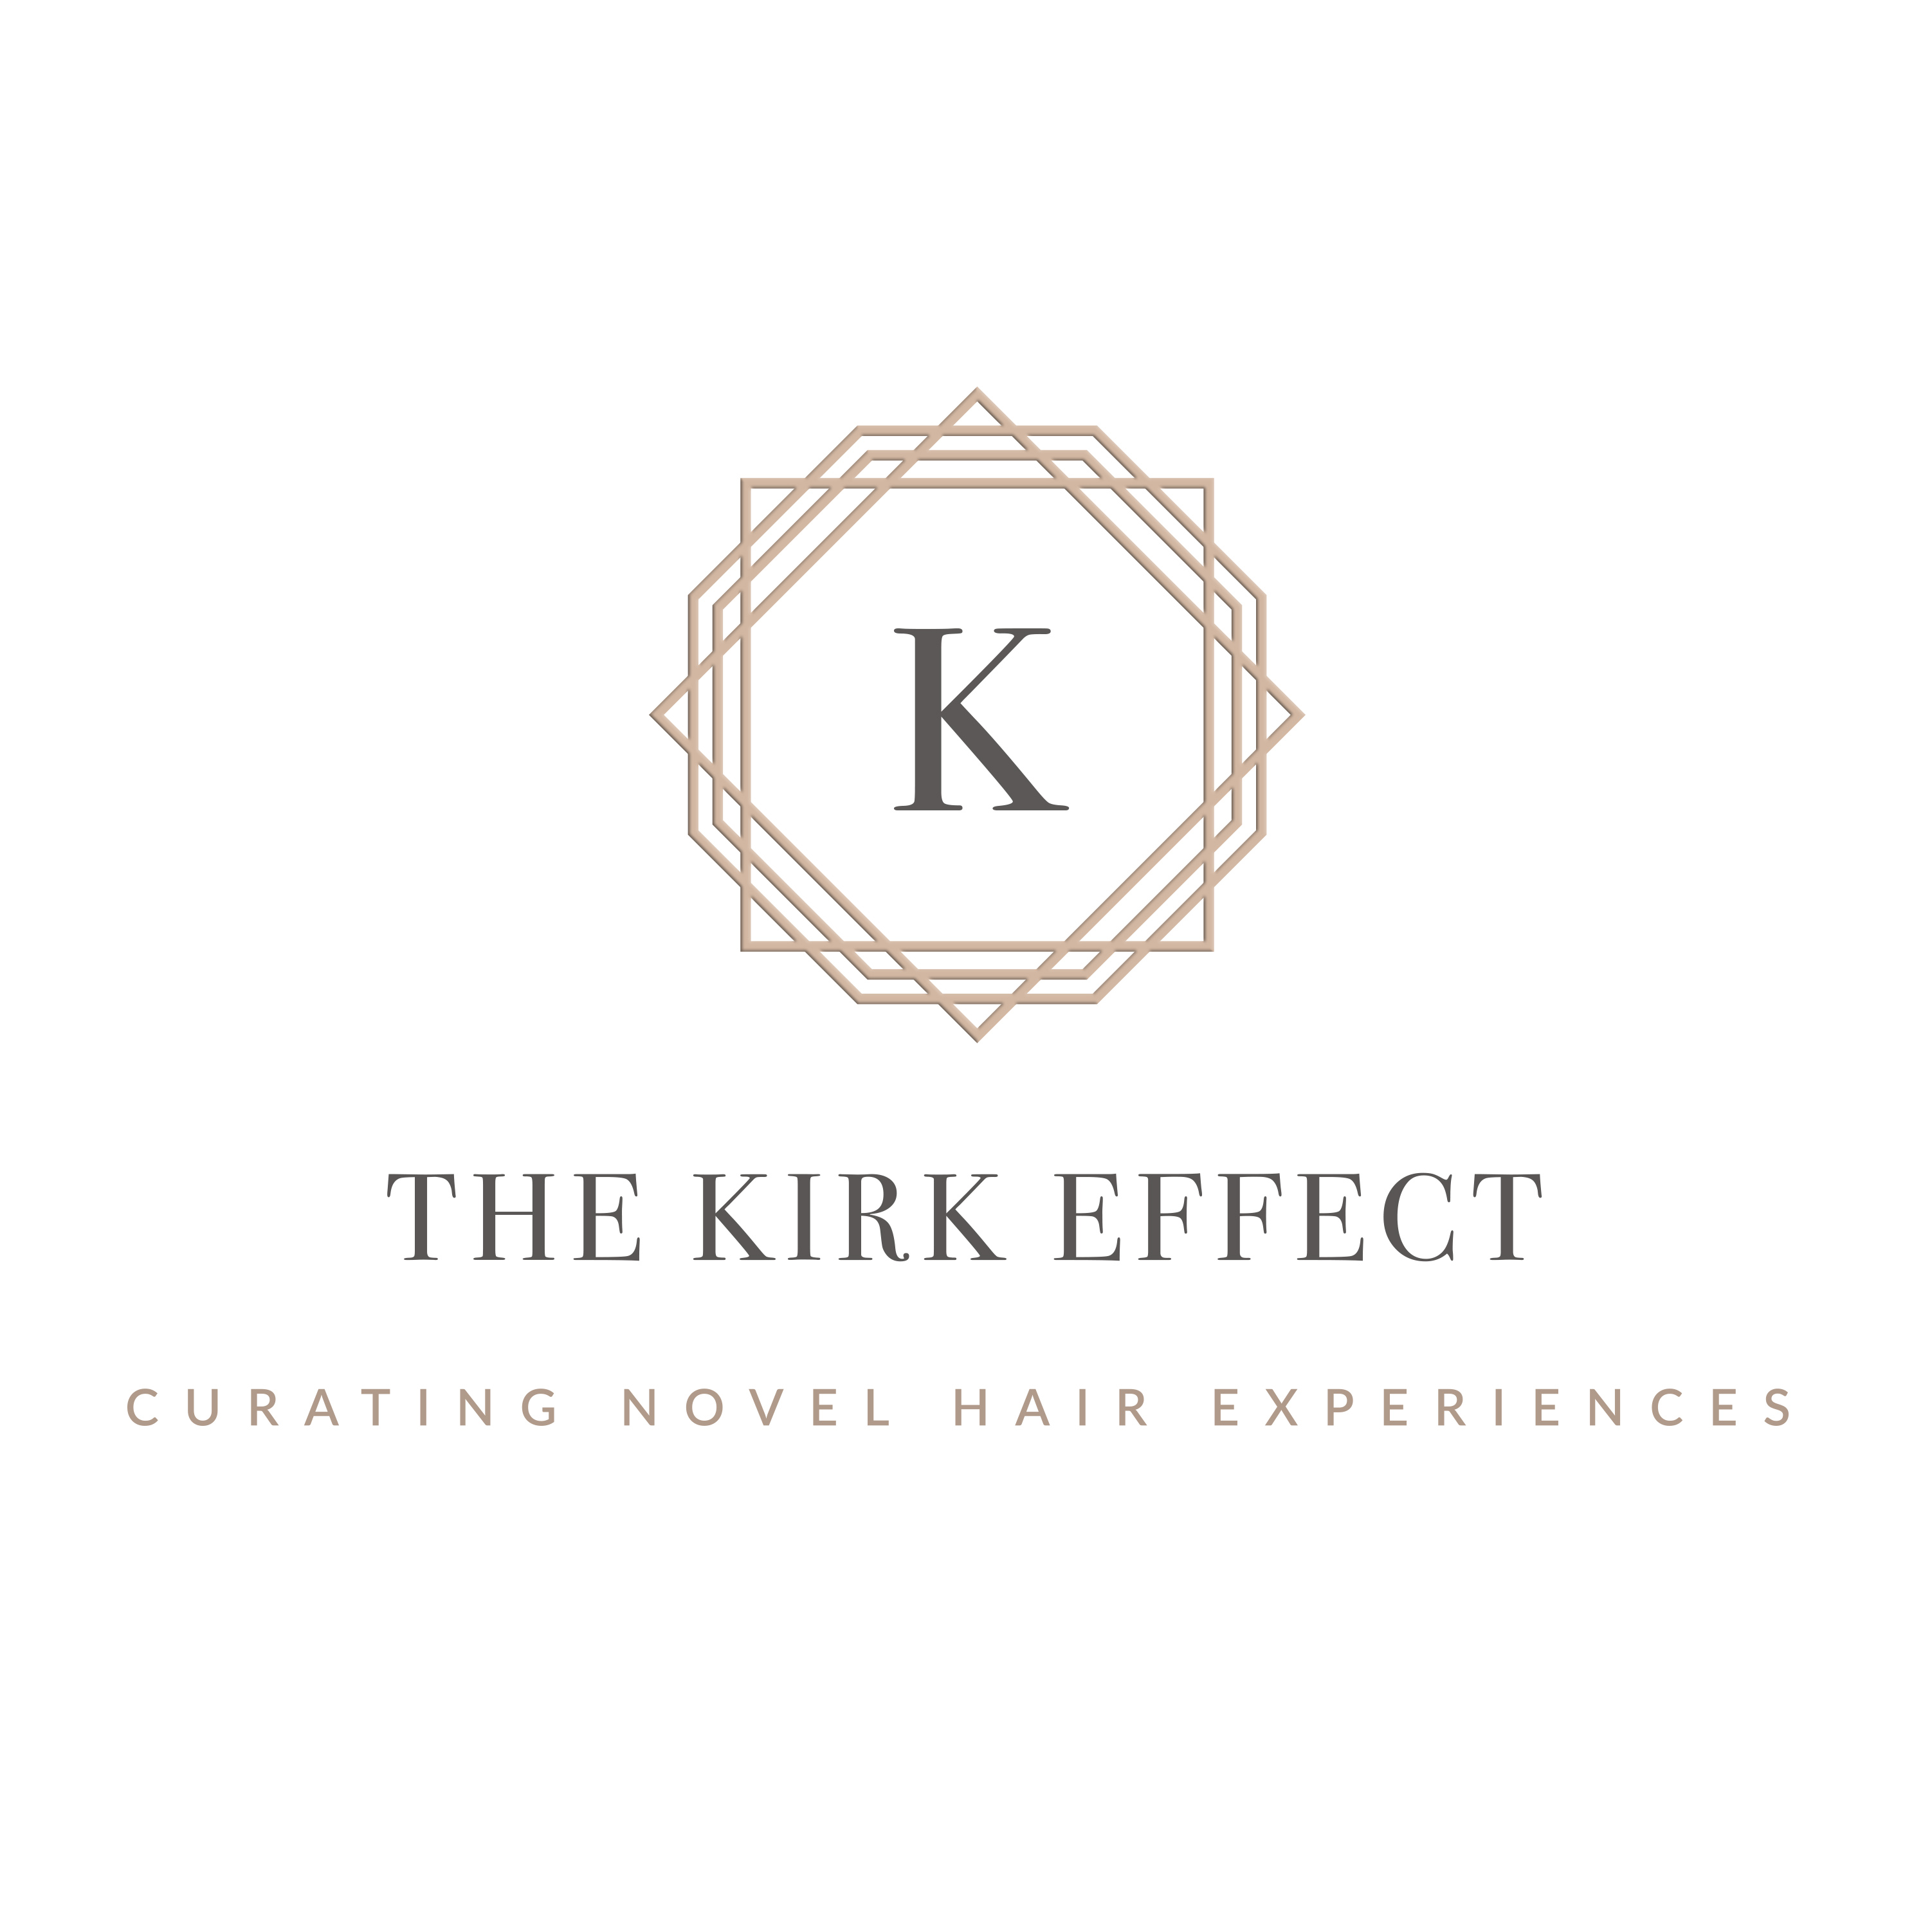 The Kirk Effect